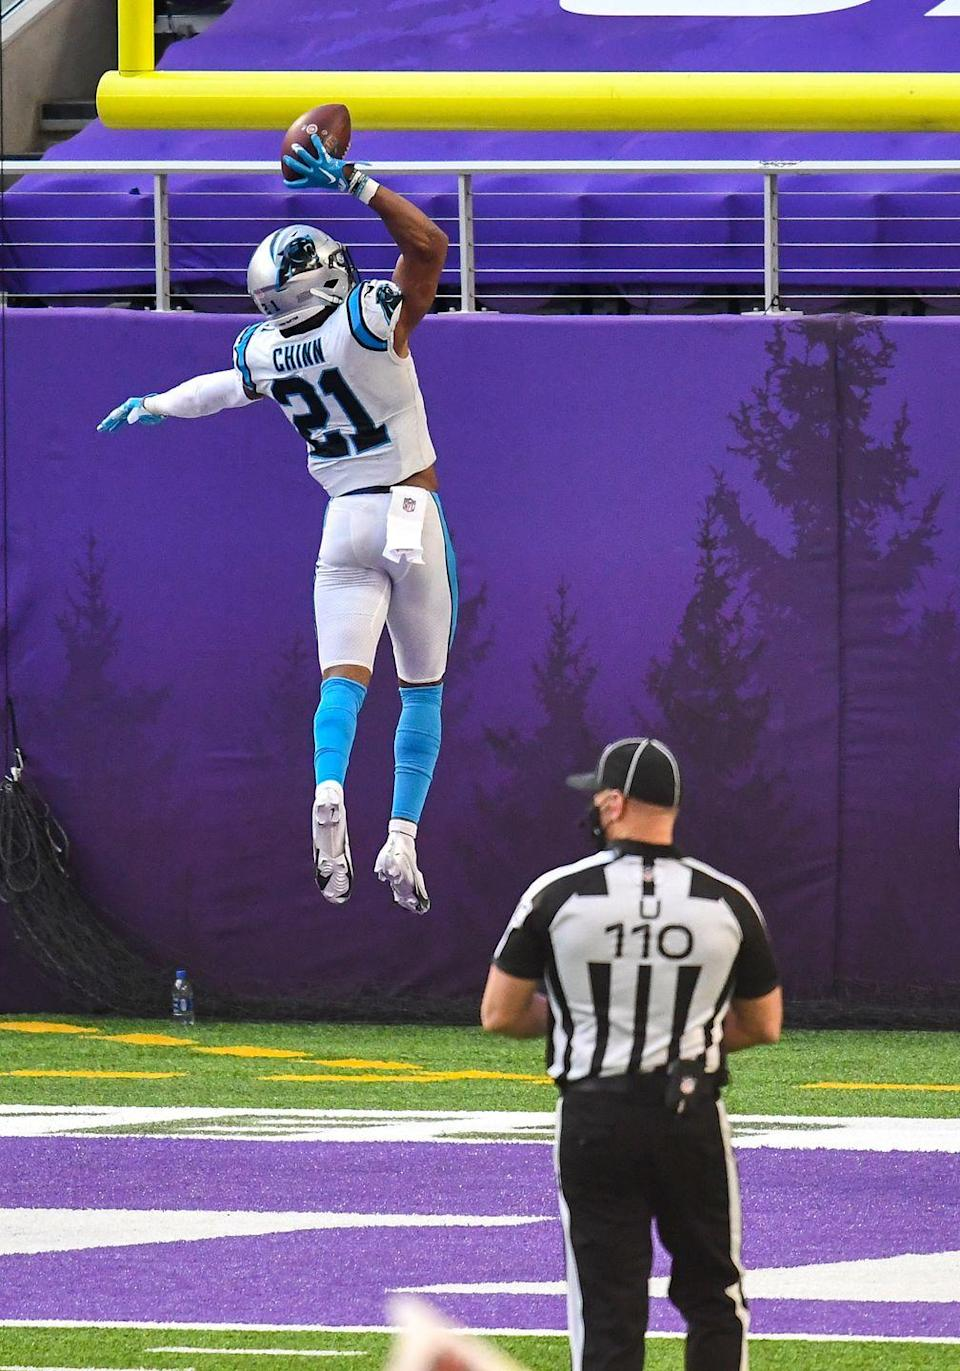 "<p>Is it obvious yet just how much the NFL has issues with touchdown celebrations? In this case, the league believes that anything that could be <a href=""https://www.gamedaynews.com/football/these-are-the-bizarre-rules-nfl-players-have-to-follow-or-else-theyll-be-fined/?view-all&chrome=1&A1c=1"" rel=""nofollow noopener"" target=""_blank"" data-ylk=""slk:considered a prop is illegal"" class=""link rapid-noclick-resp"">considered a prop is illegal</a> for players to use during touchdowns. And guess what's on the list of ""props""? A goalpost. </p>"